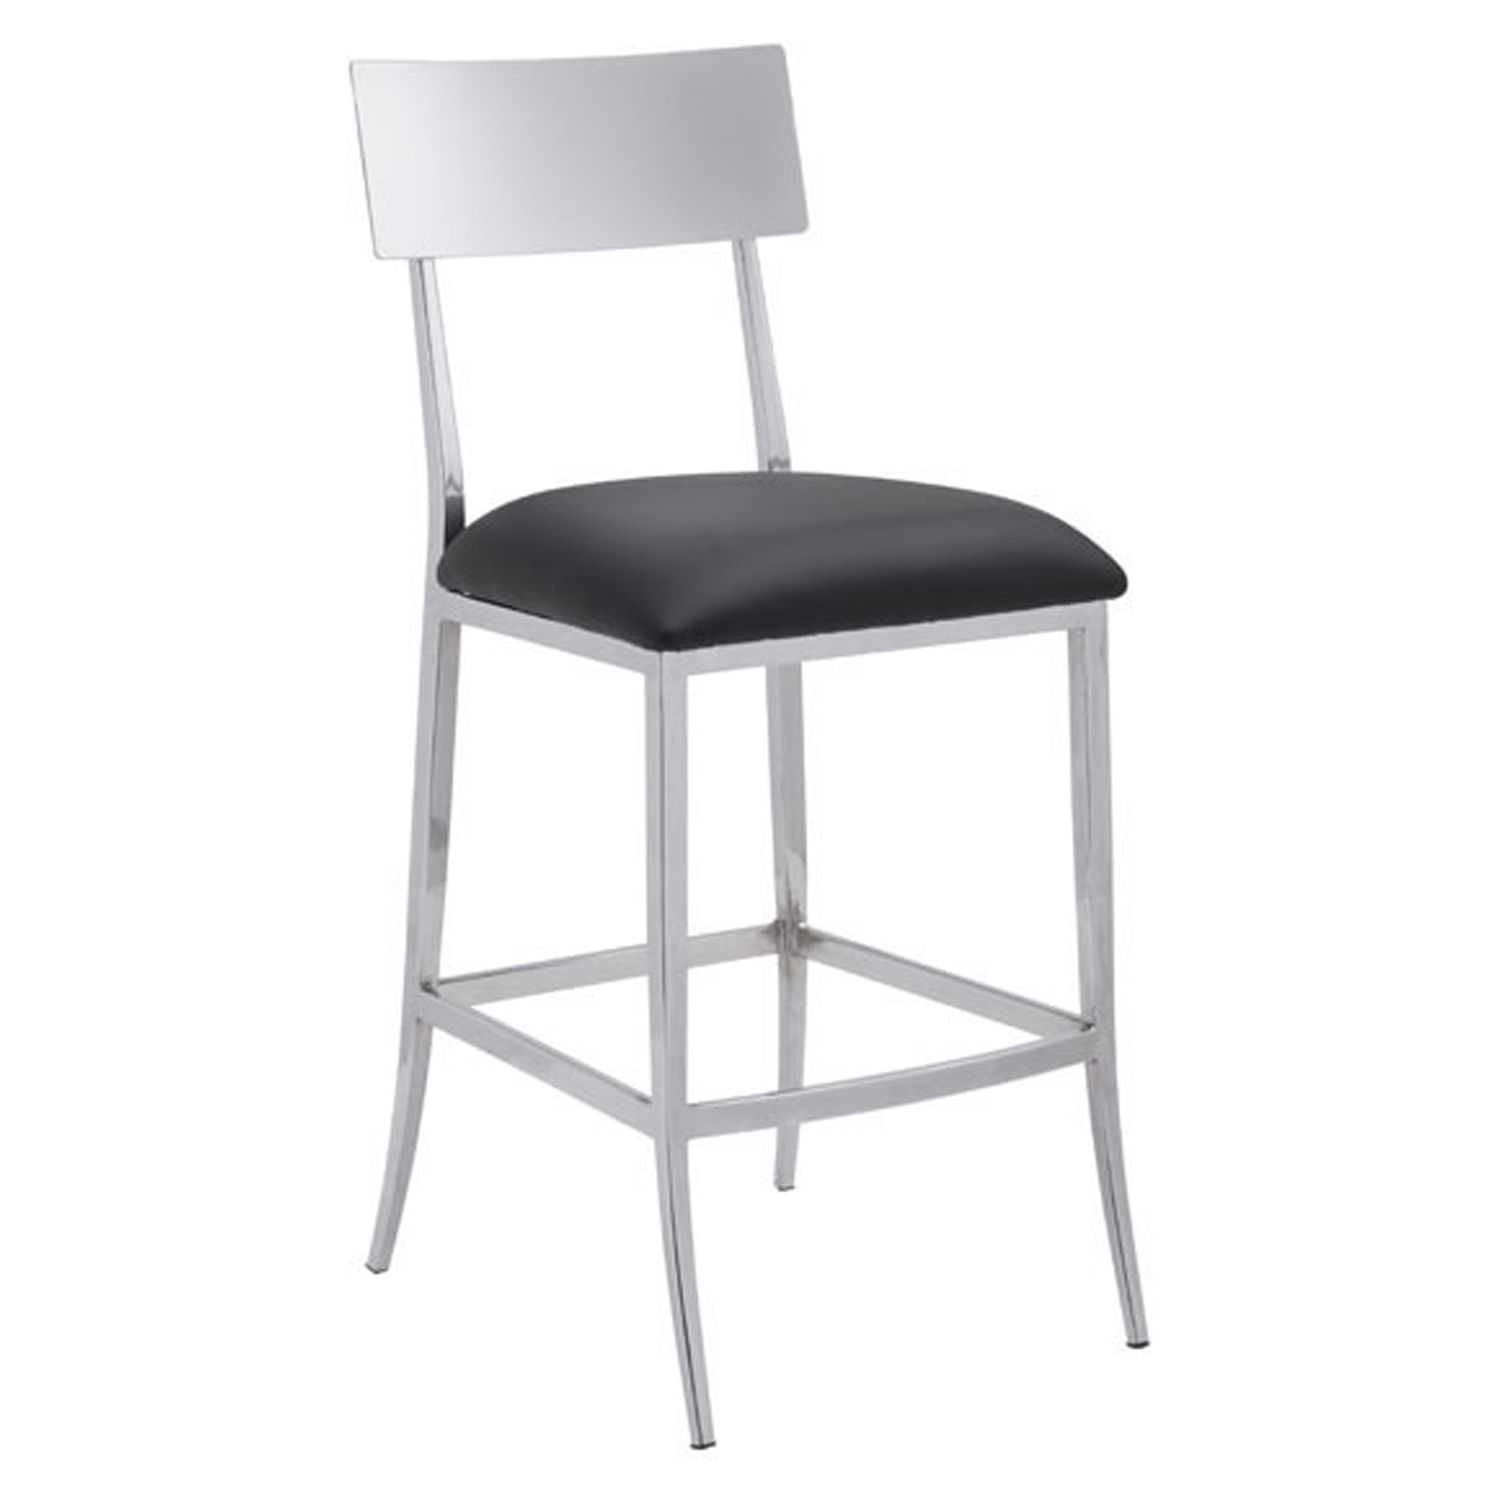 Mach Counter Chair - Black